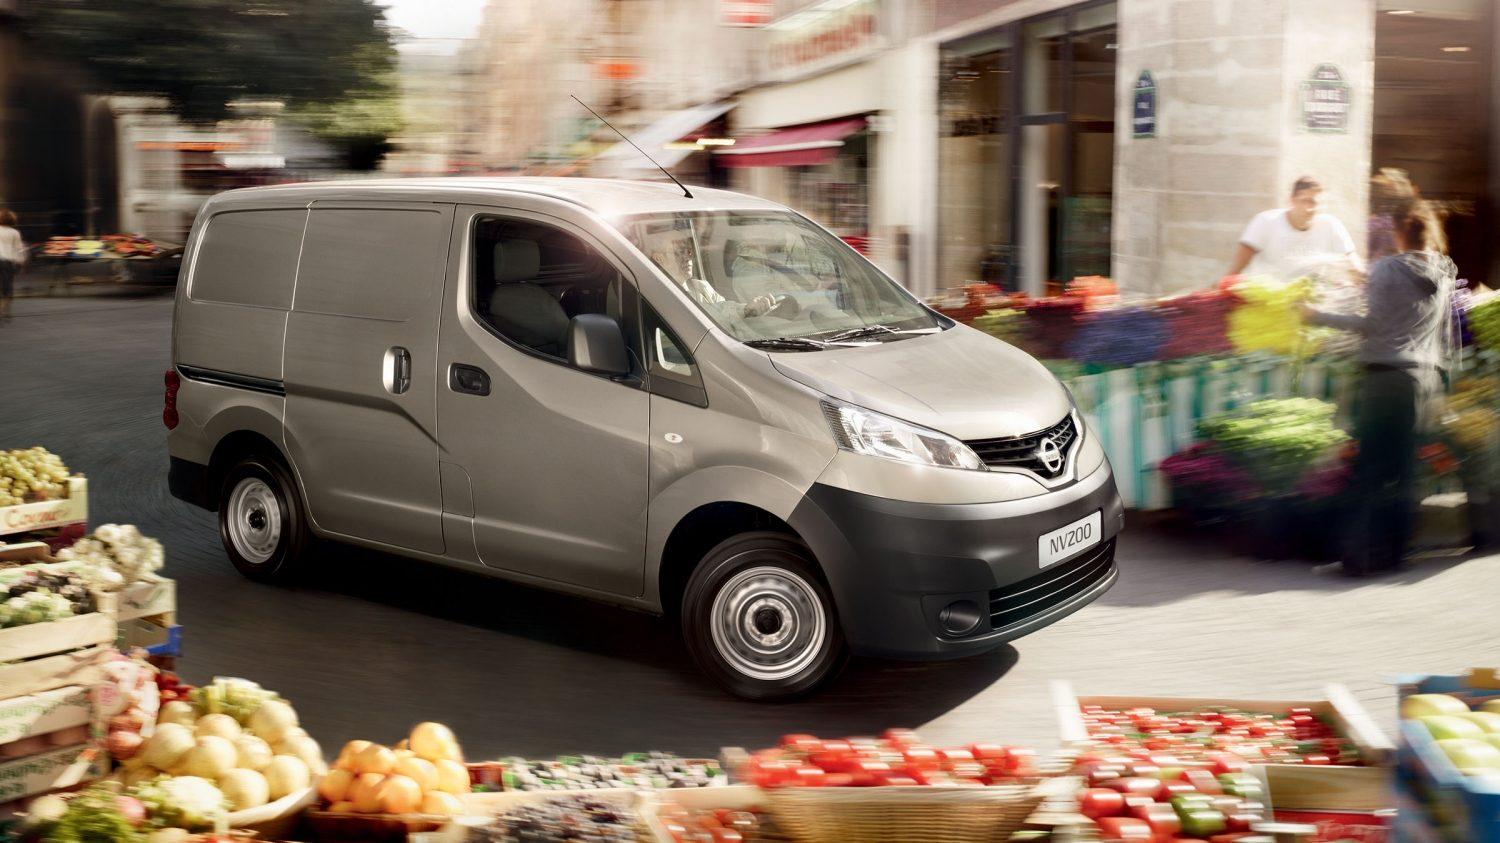 Nissan NV200 - Thuis in de stad